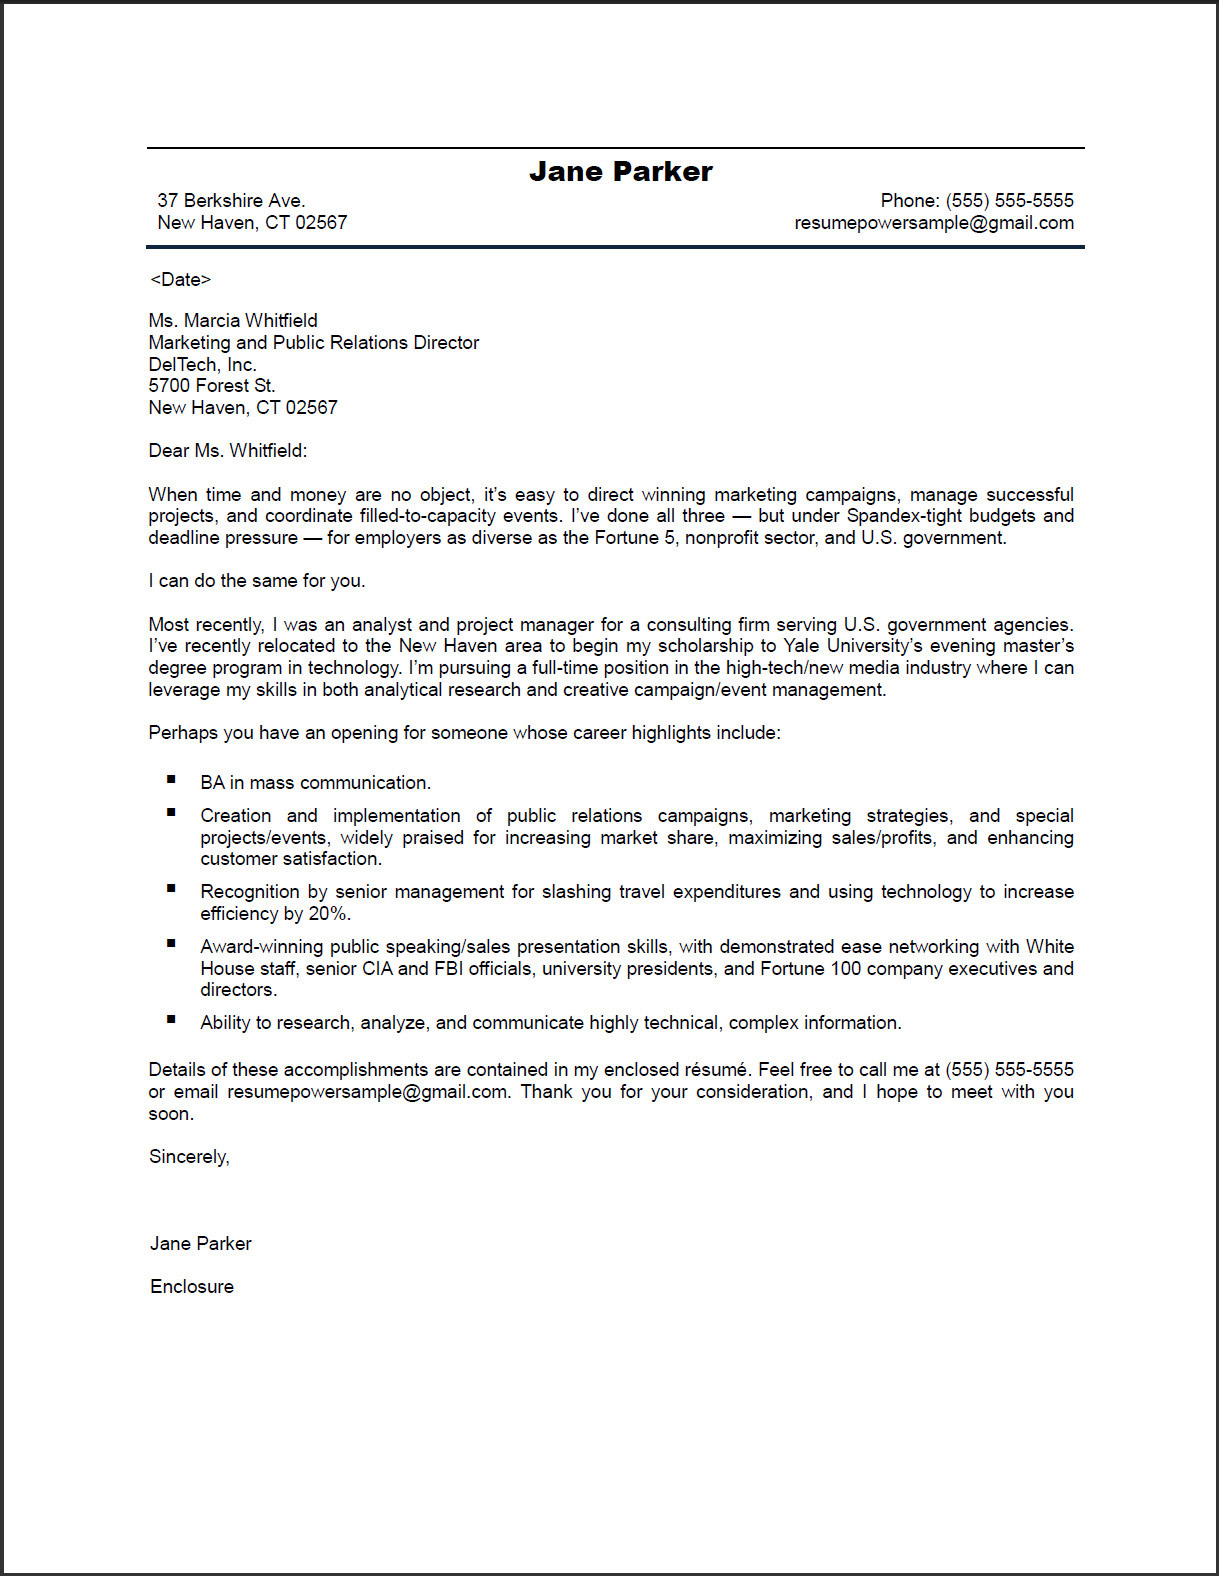 sample resume cover letter examples eczasolinfco